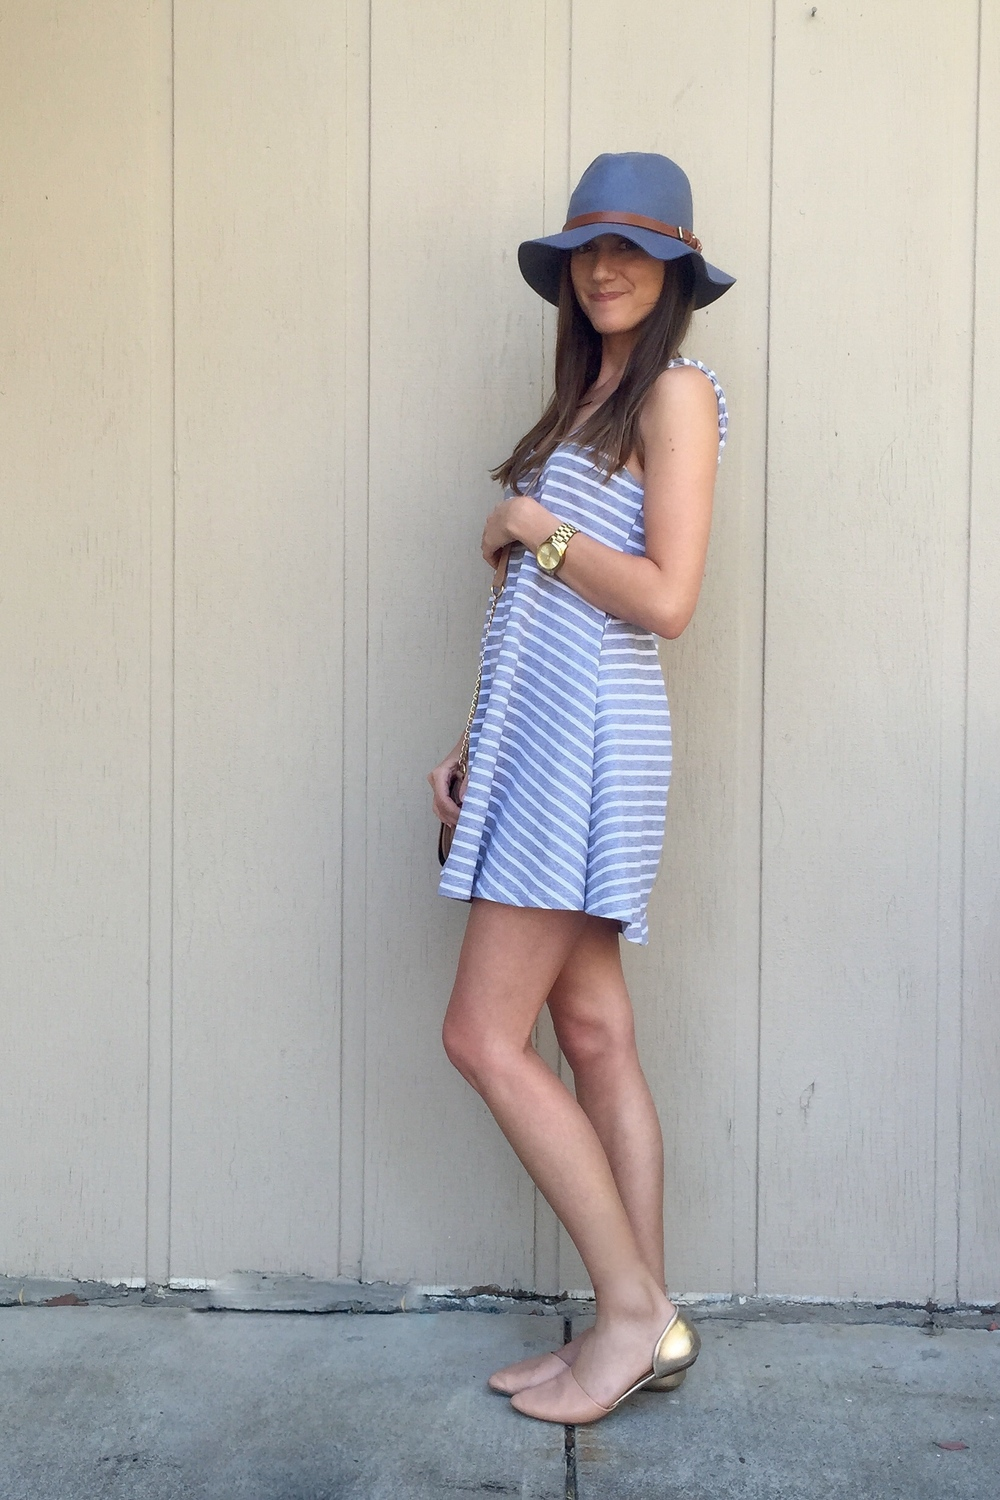 0e6270fb30 If you saw my last post you know that I have been living in dresses this  summer and have had so much fun finding fun pieces from SheIn.